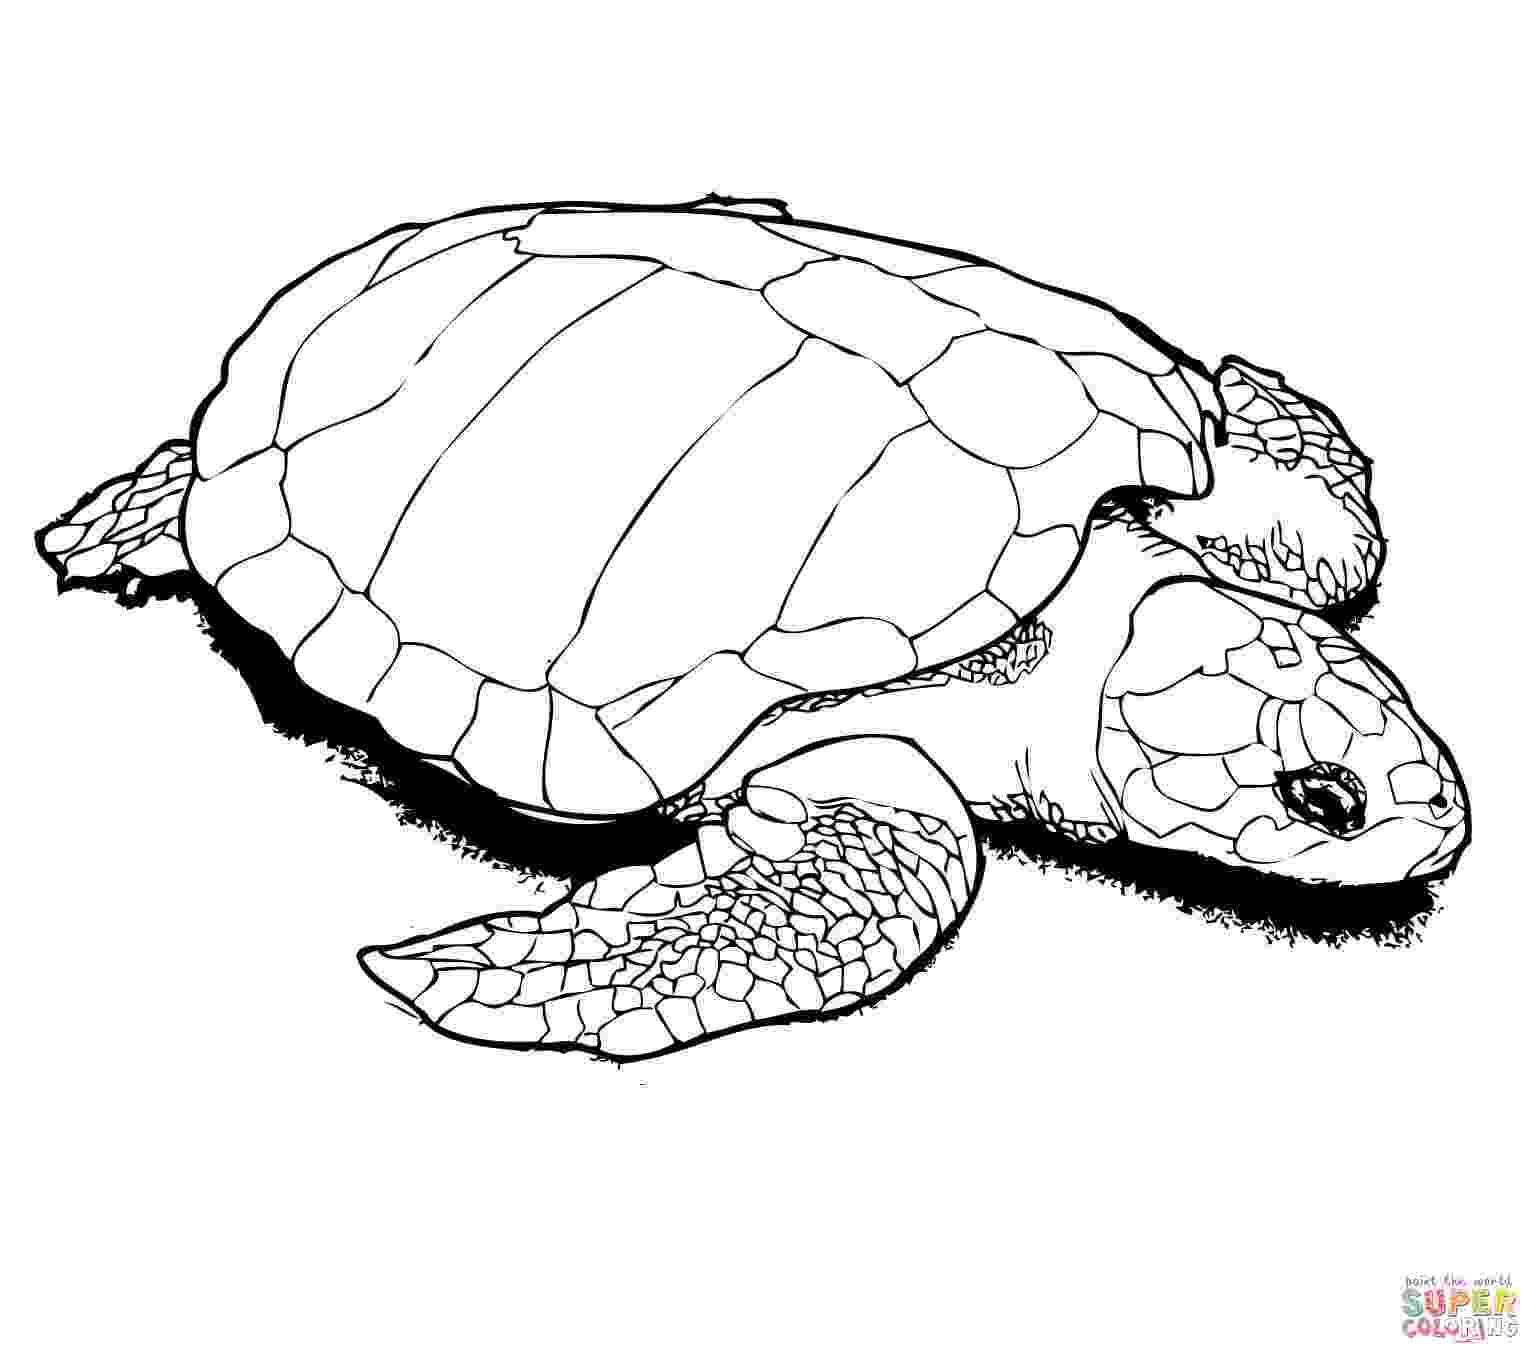 coloring pages of sea turtles sea turtles free printable templates coloring pages sea turtles coloring of pages